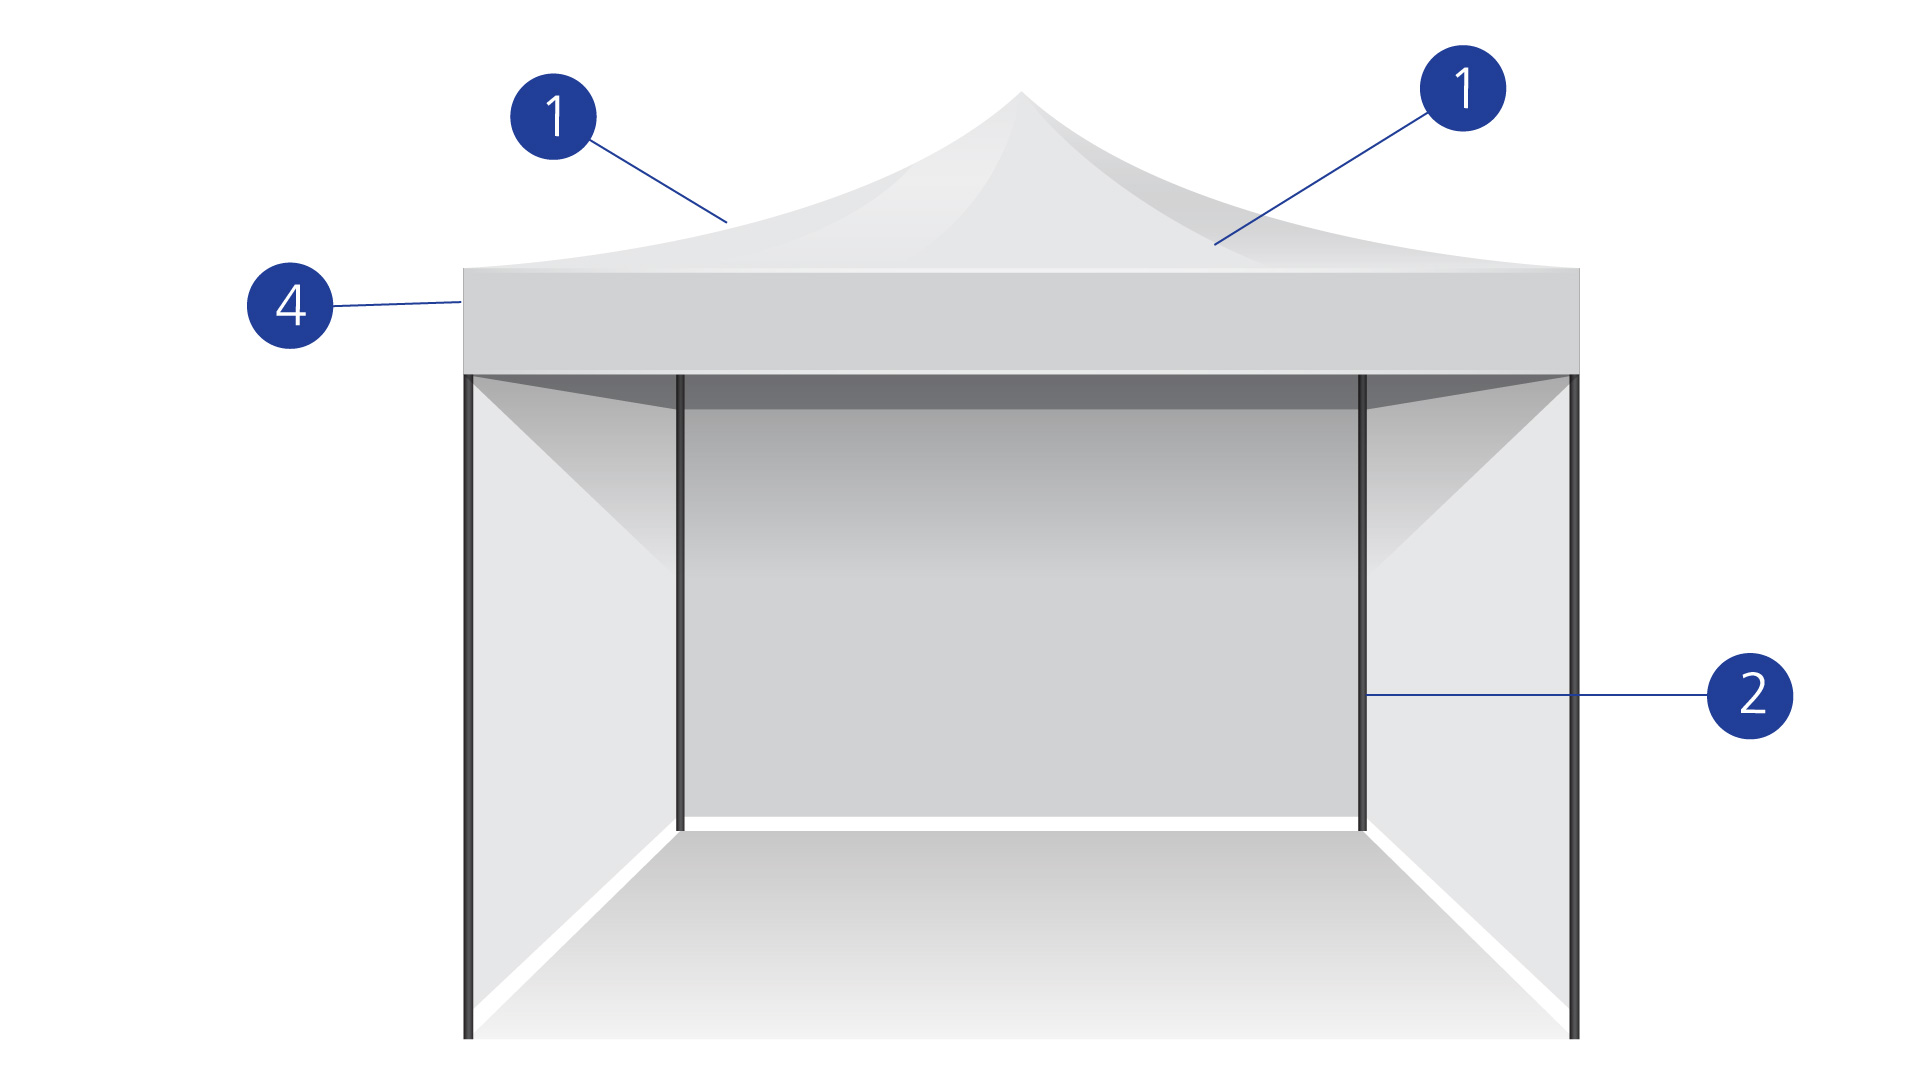 Awnings wireframe